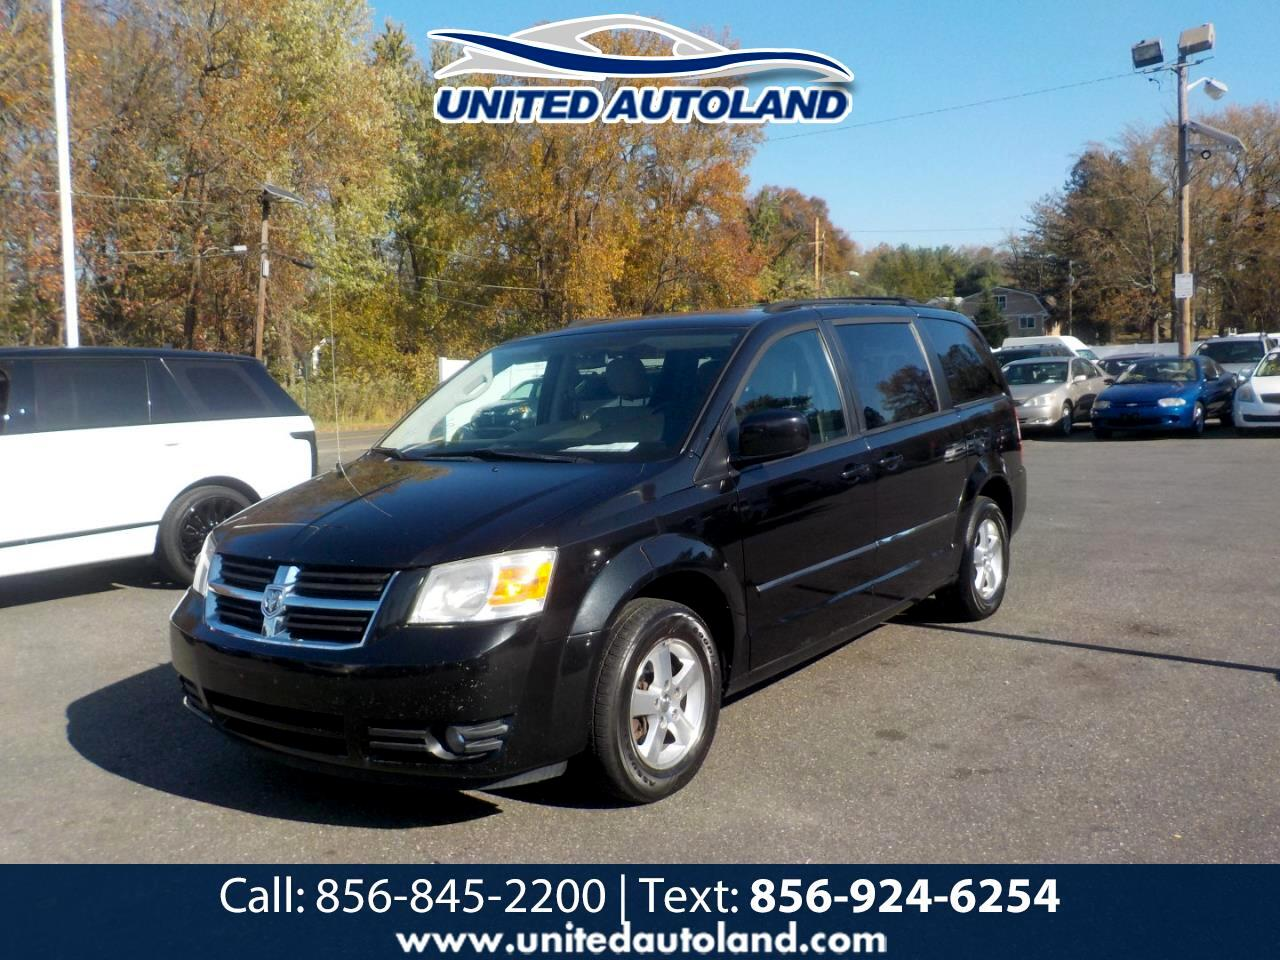 2008 Dodge Grand Caravan 4dr Wgn SXT